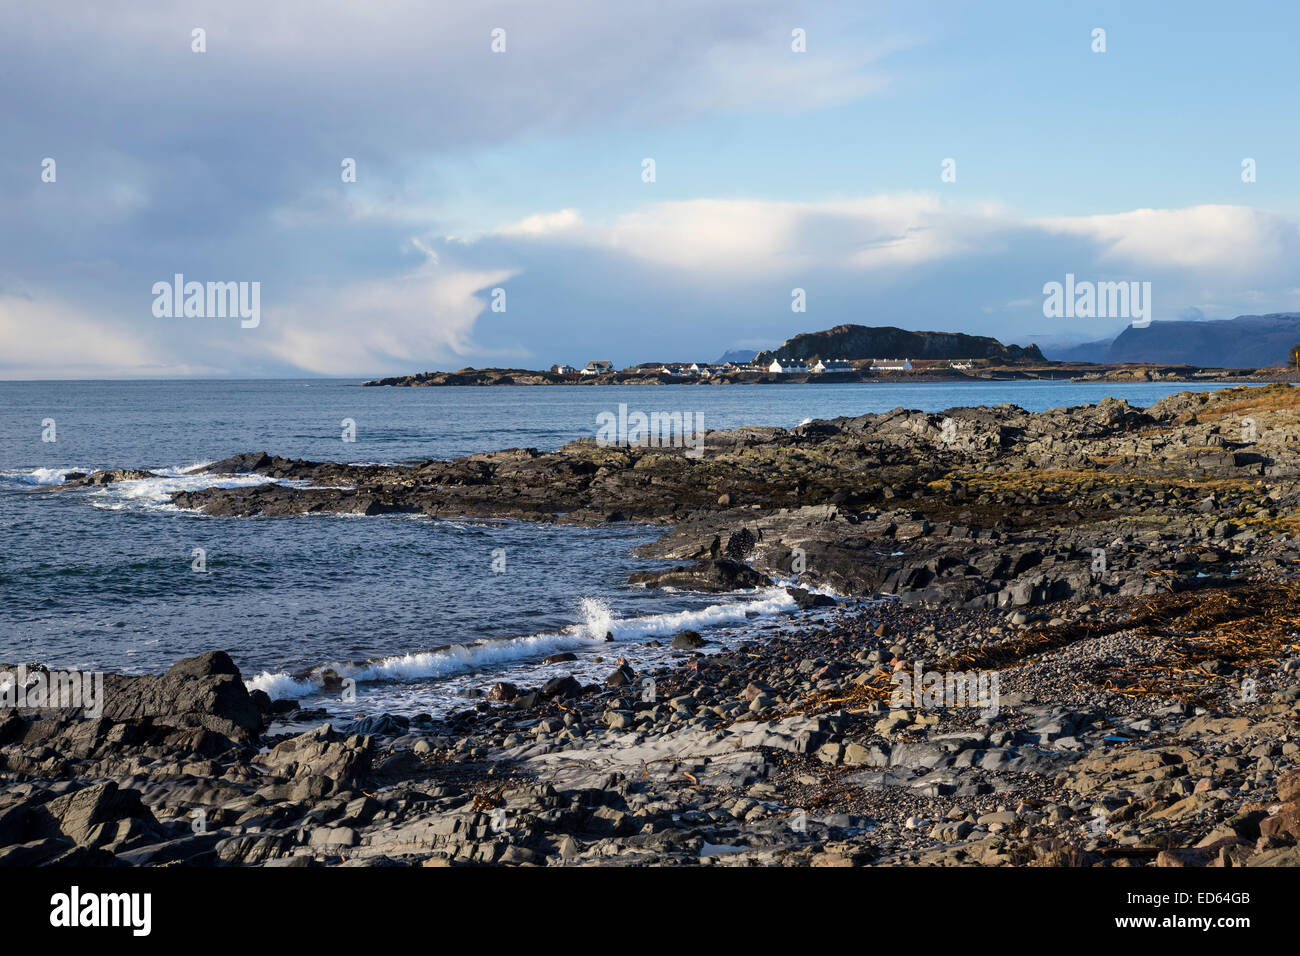 View of incoming tide and breakers on the rocky foreshore looking towards Ellenabeich on a brisk winter day in Scotland - Stock Image